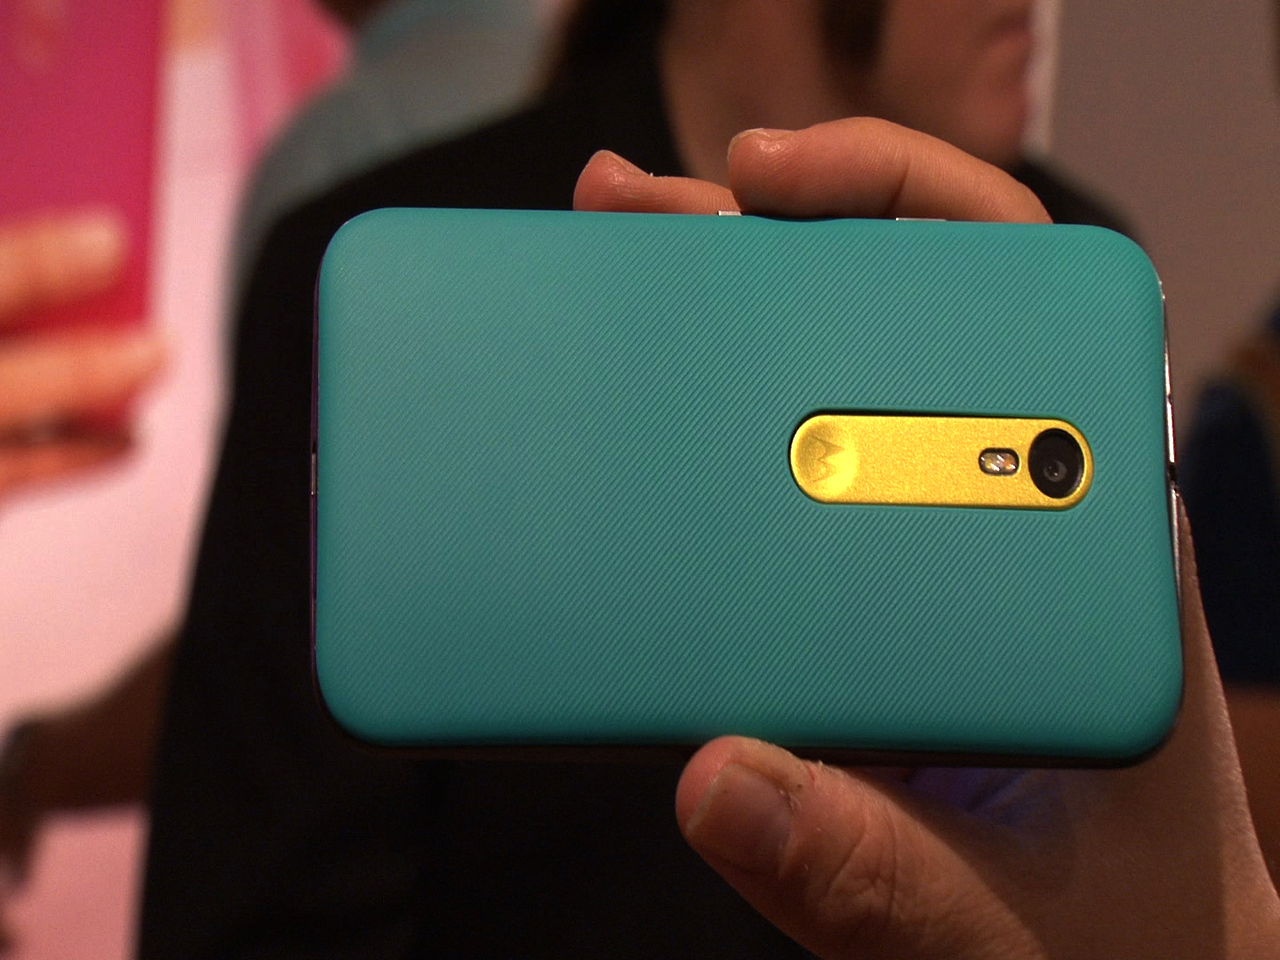 Video: New Moto G adds better camera, larger screen, and water dunkability